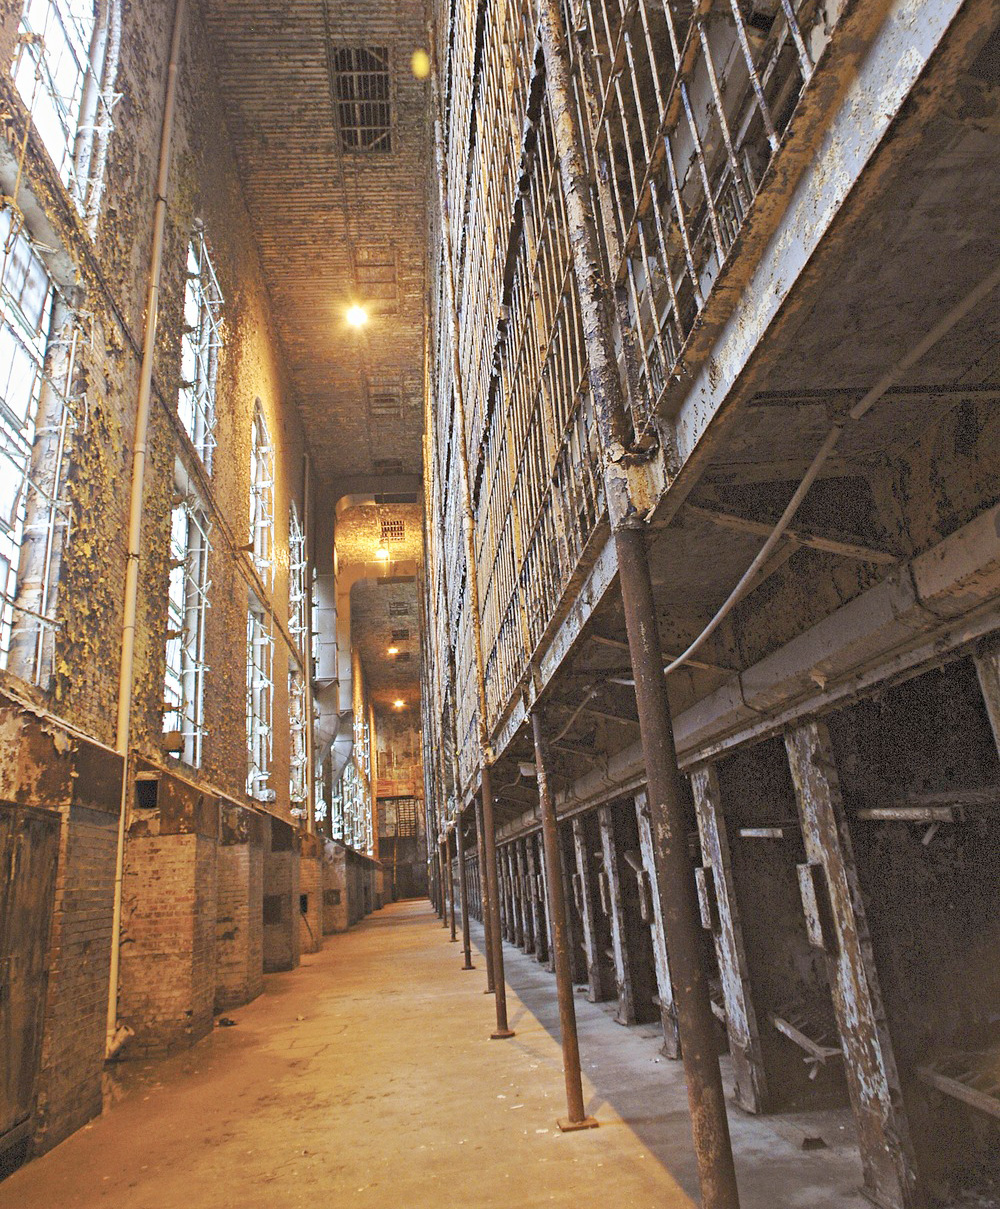 As if the setting wasn't spooky enough, guides detail ghost sightings at  the Ohio State Reformatory in Mansfield.